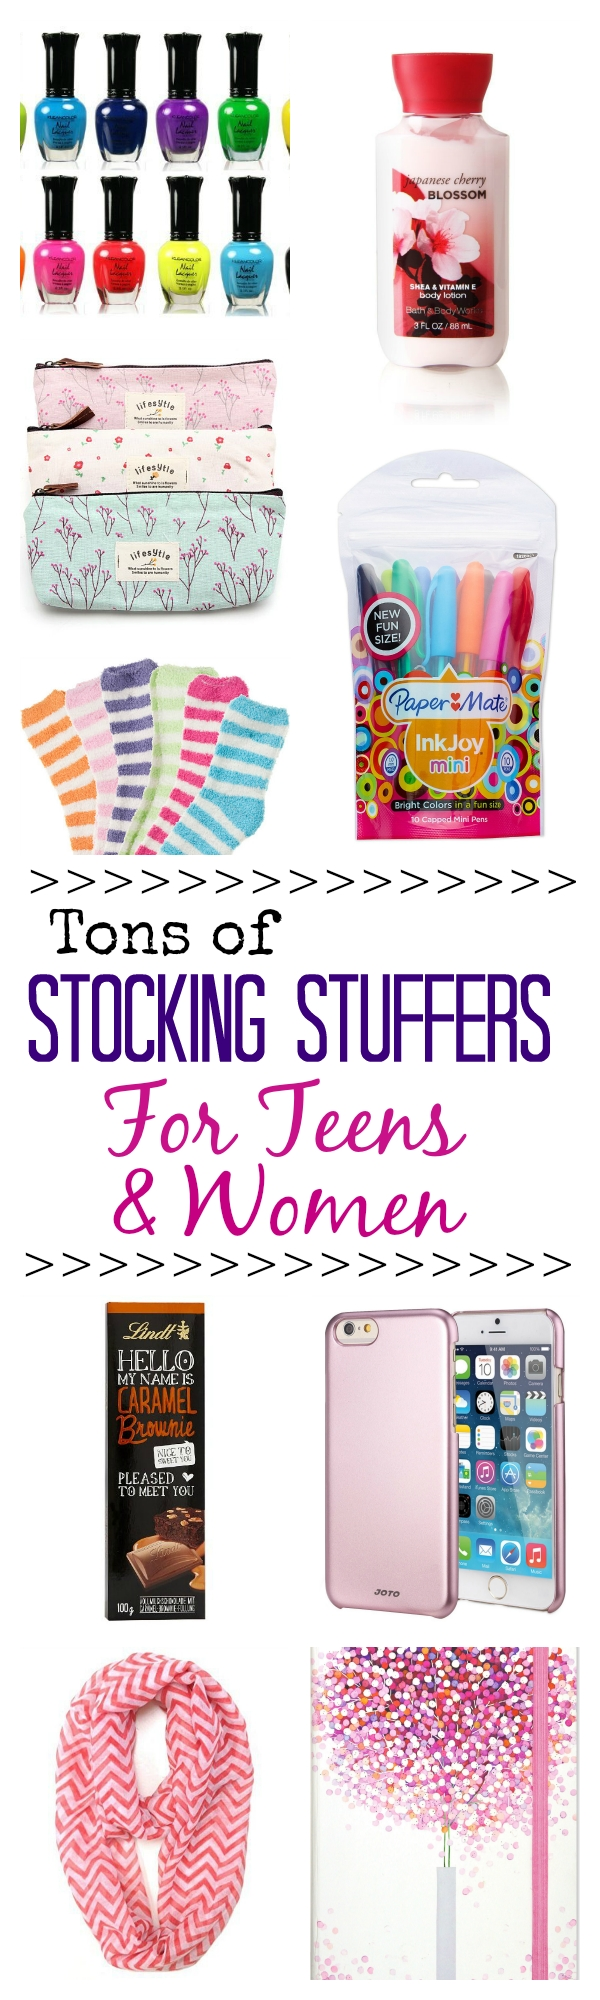 10 Trendy Stocking Stuffers Ideas For Women huge stocking stuffer ideas list crazy little projects 3 2020